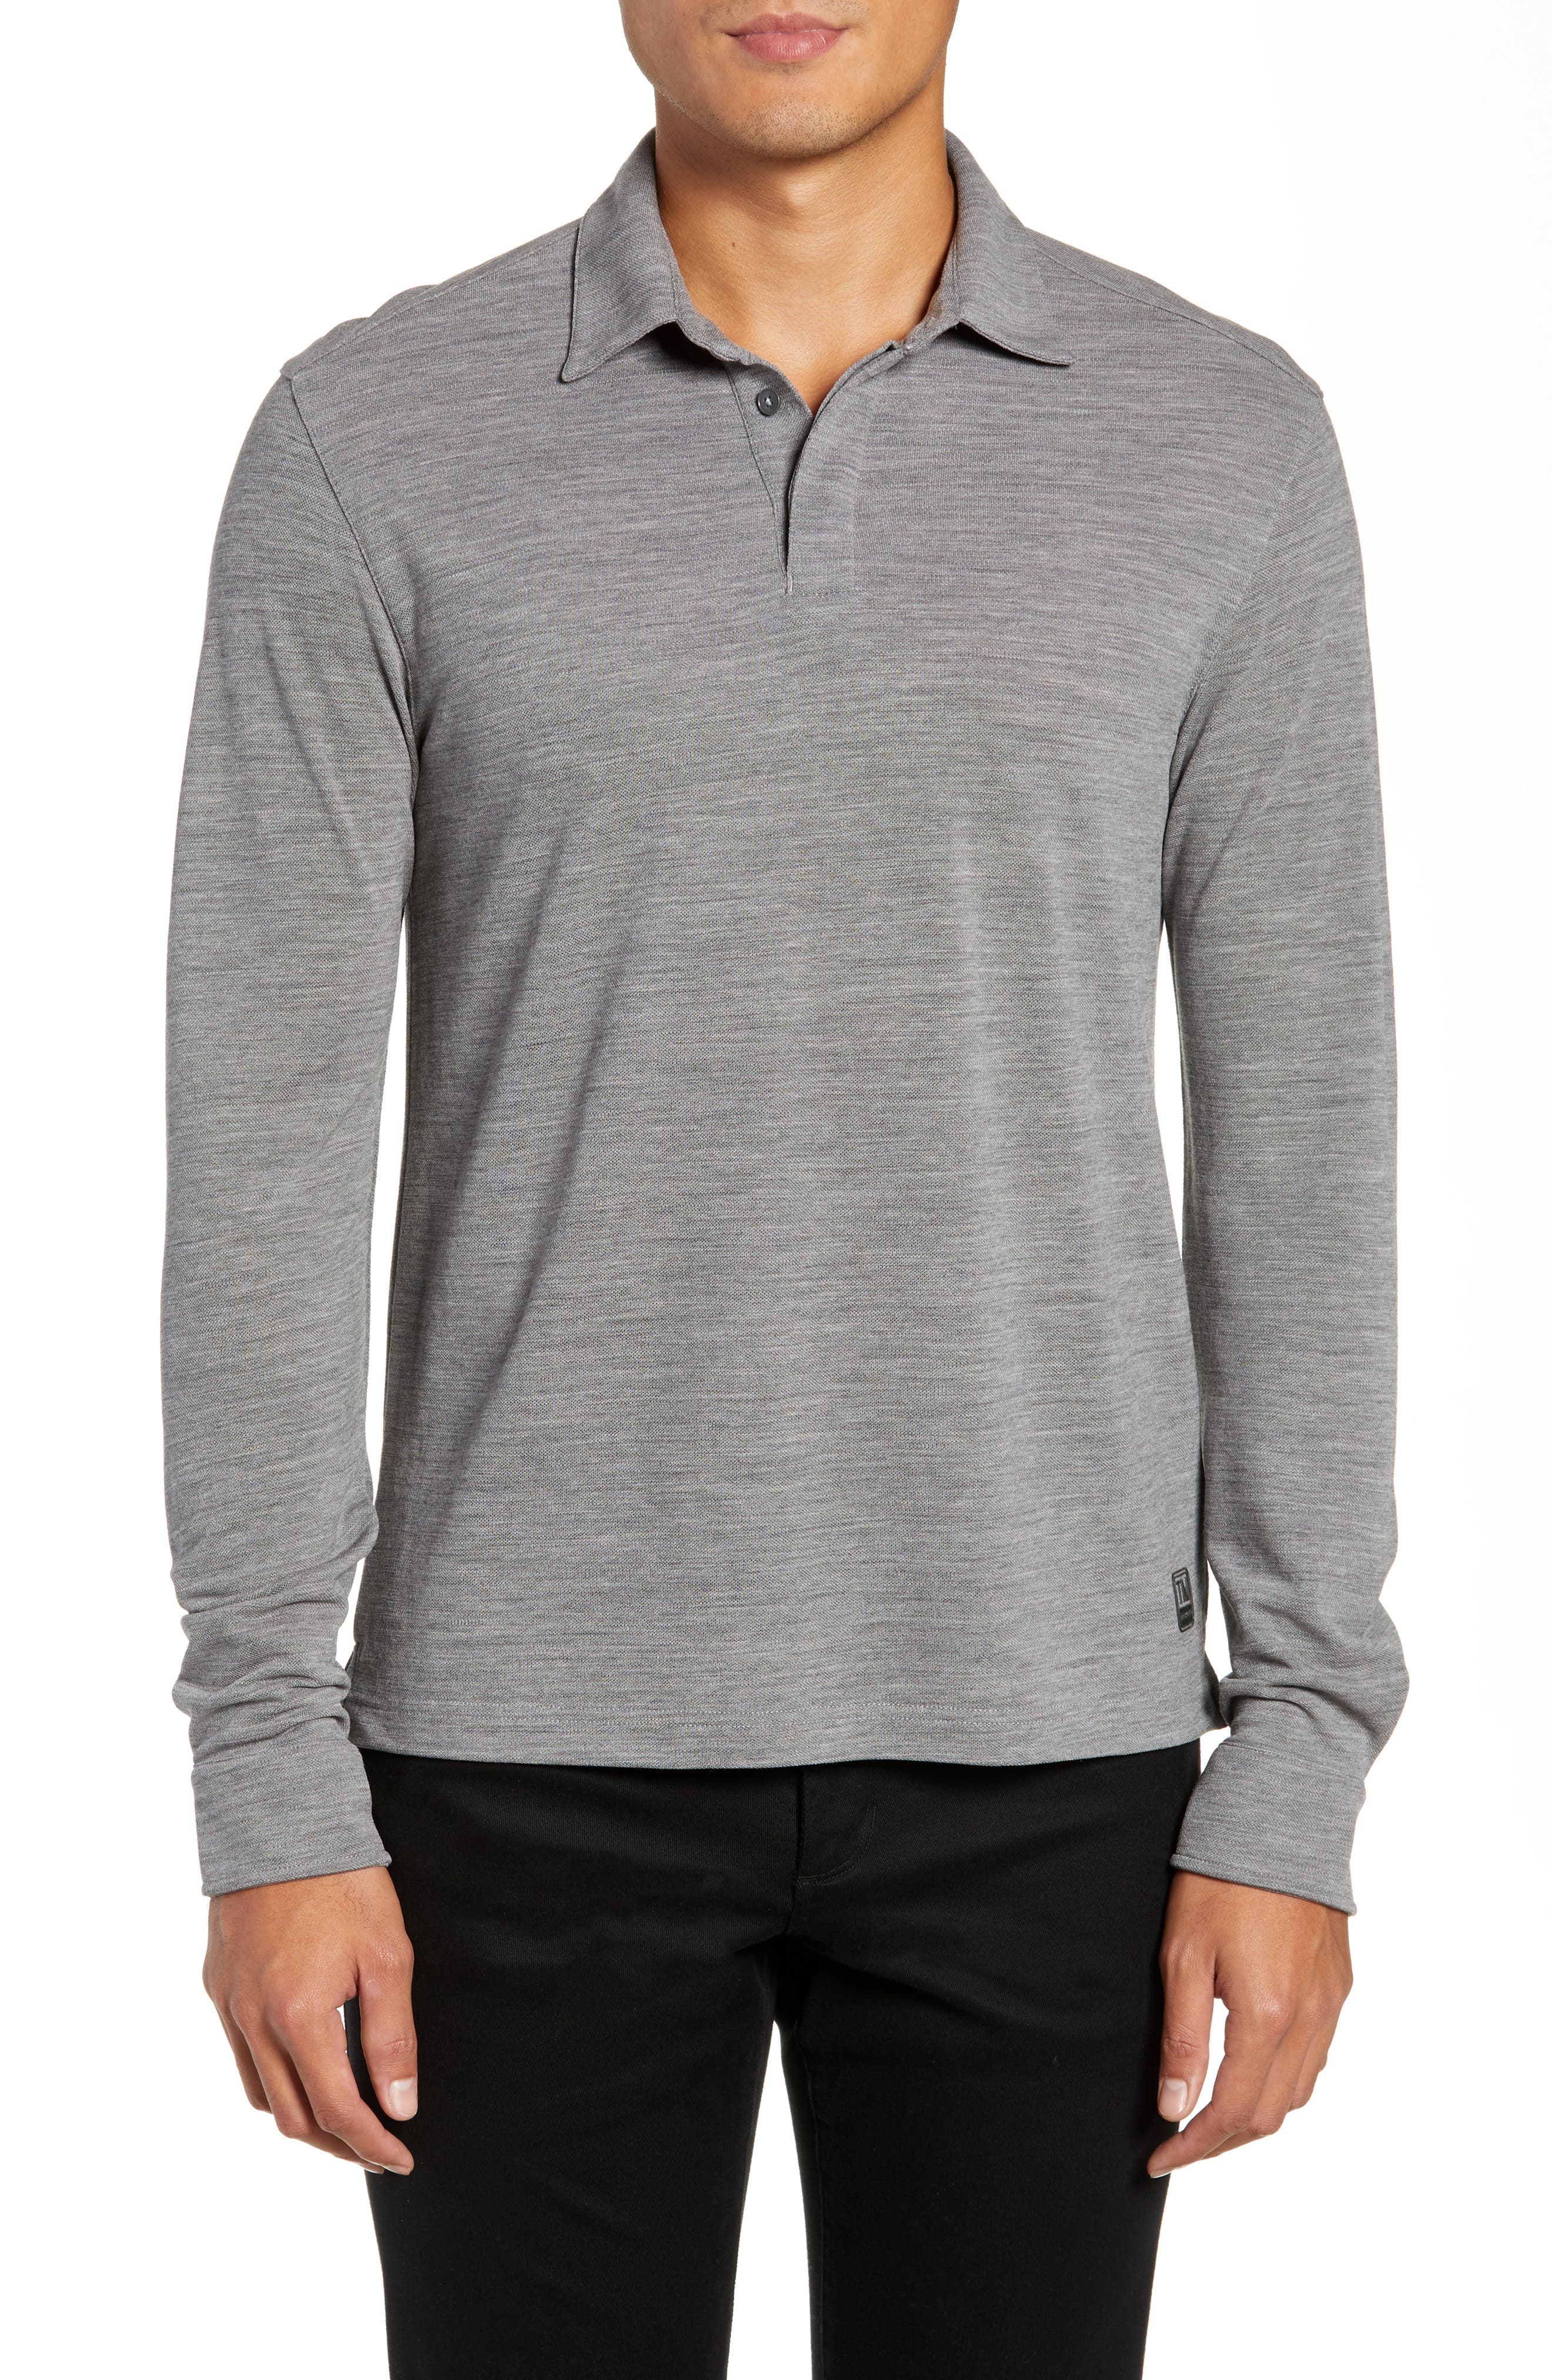 Z ZEGNA Long-Sleeve Wool Polo Shirt With Logo in Grey